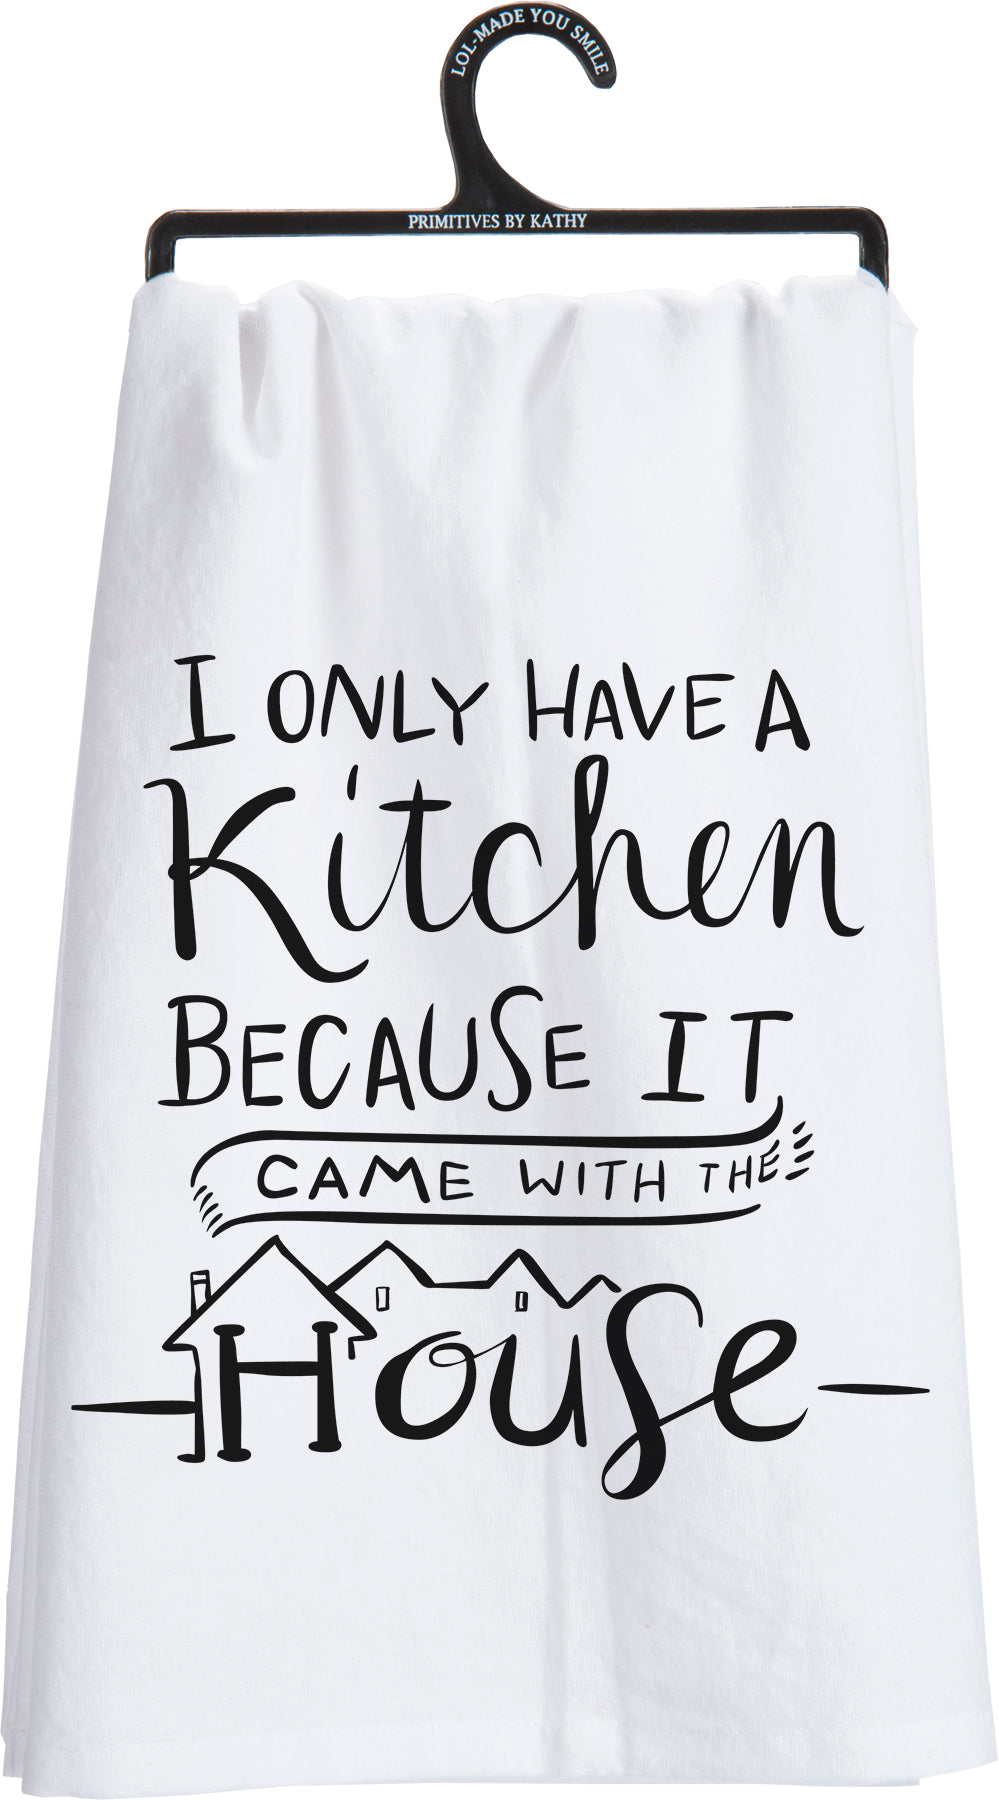 Kitchen Because It Came With The House Towel